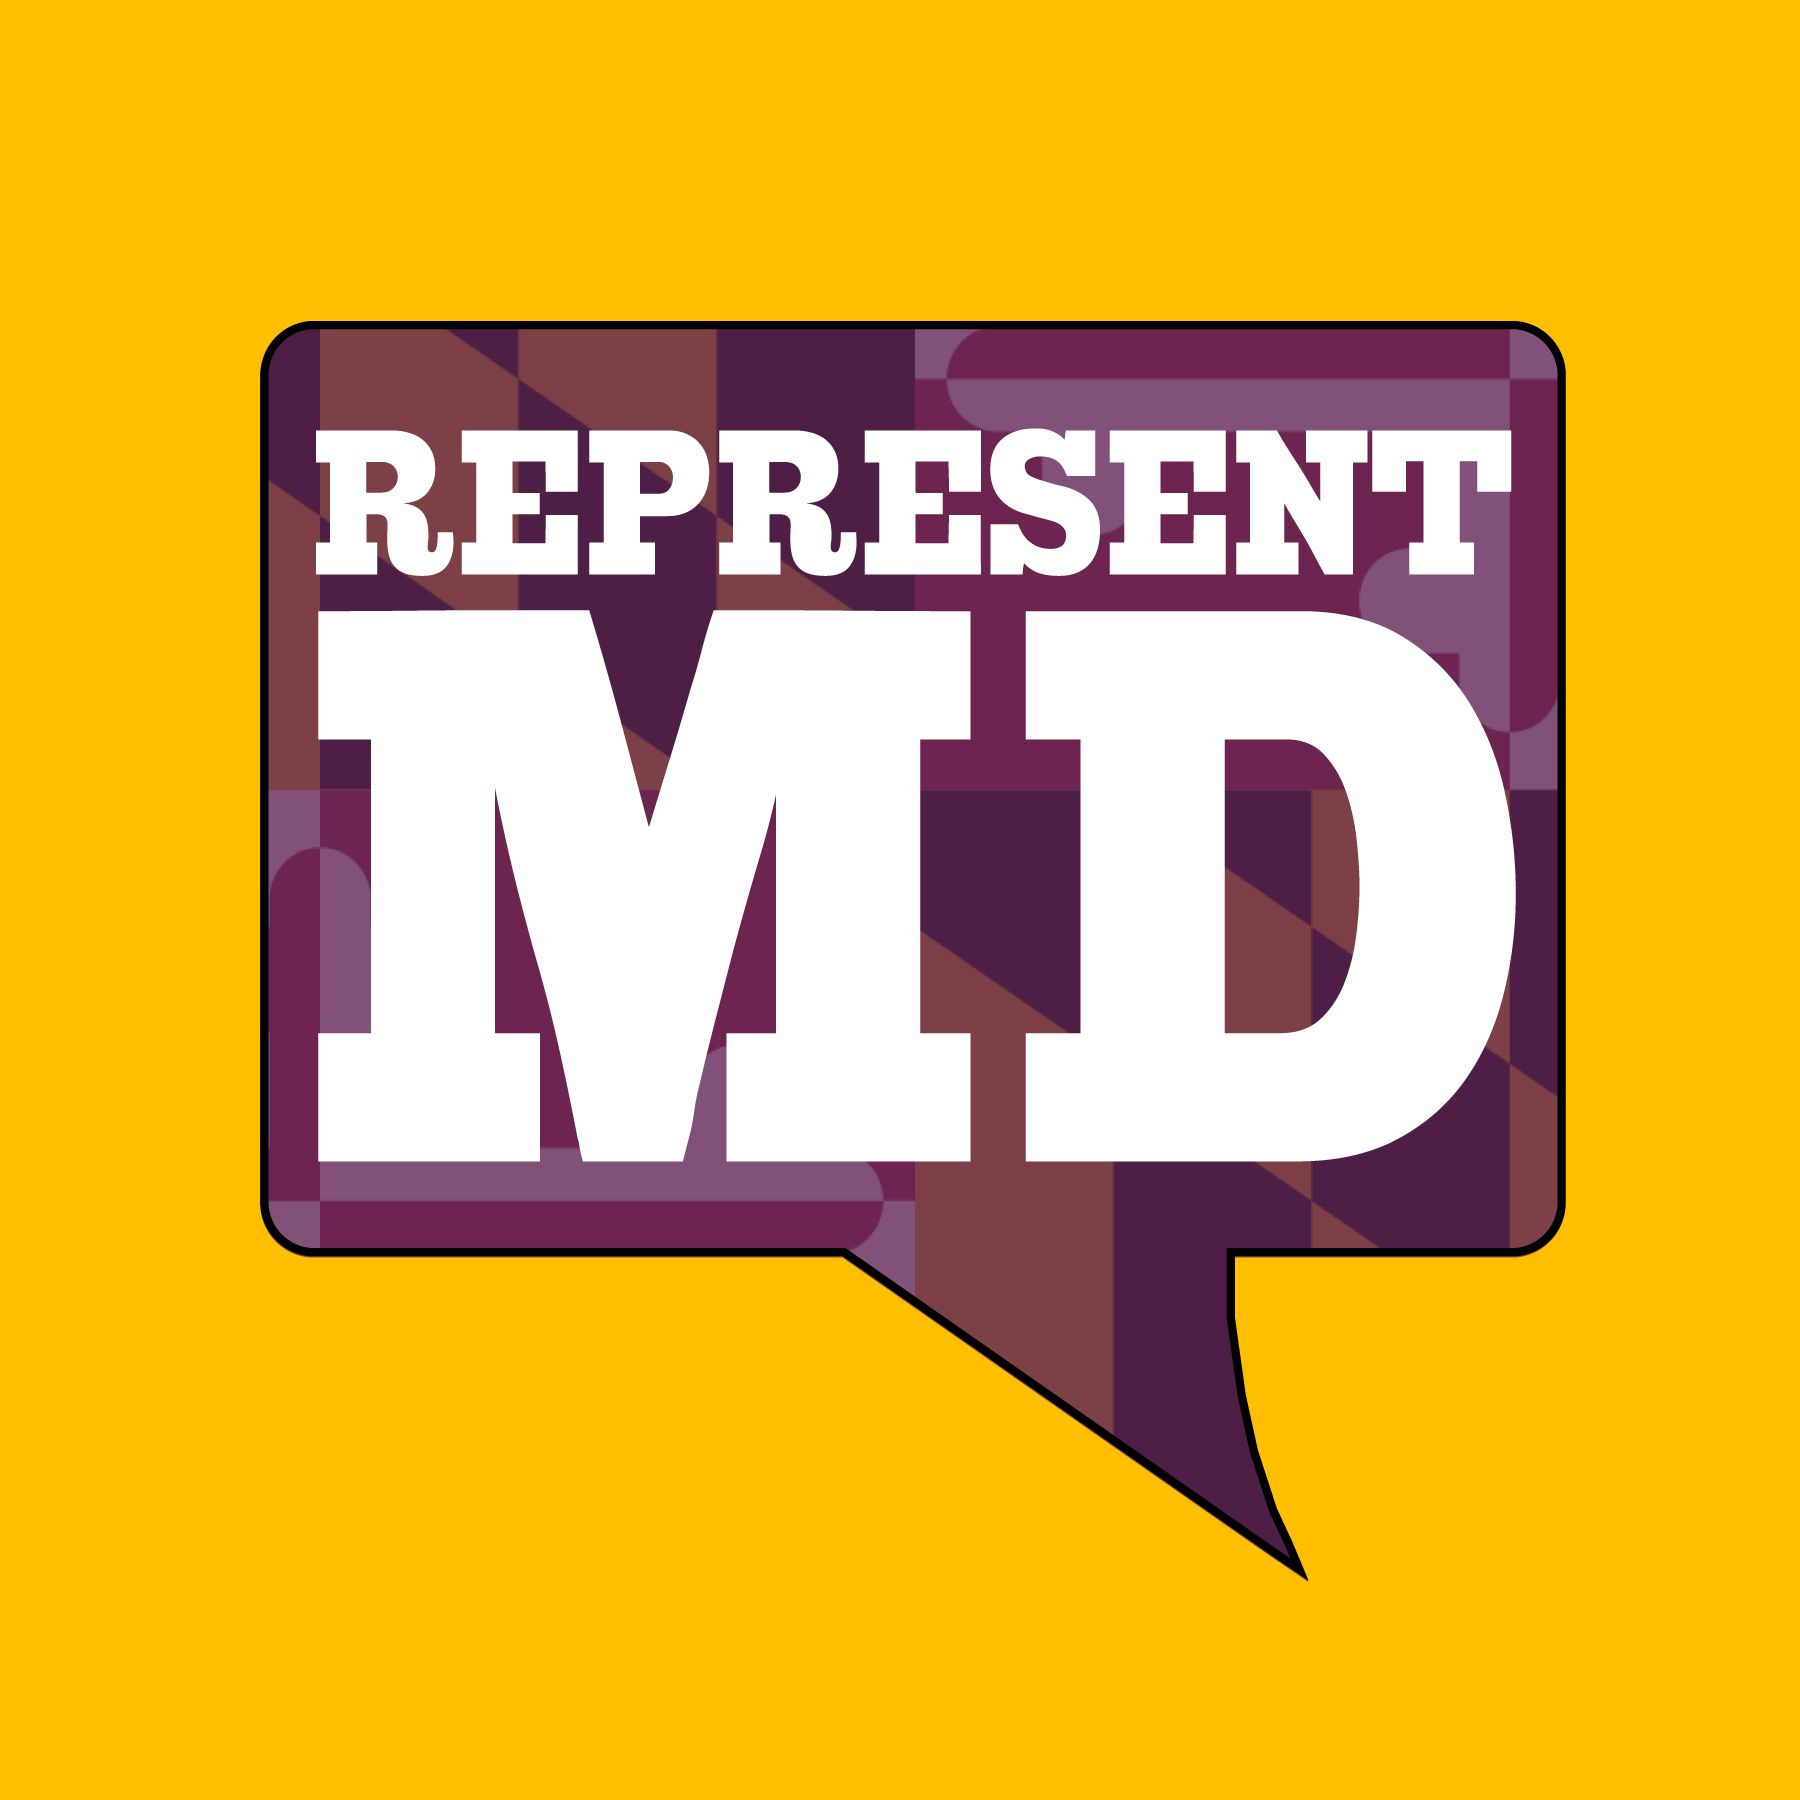 Repmd logo new yellow background